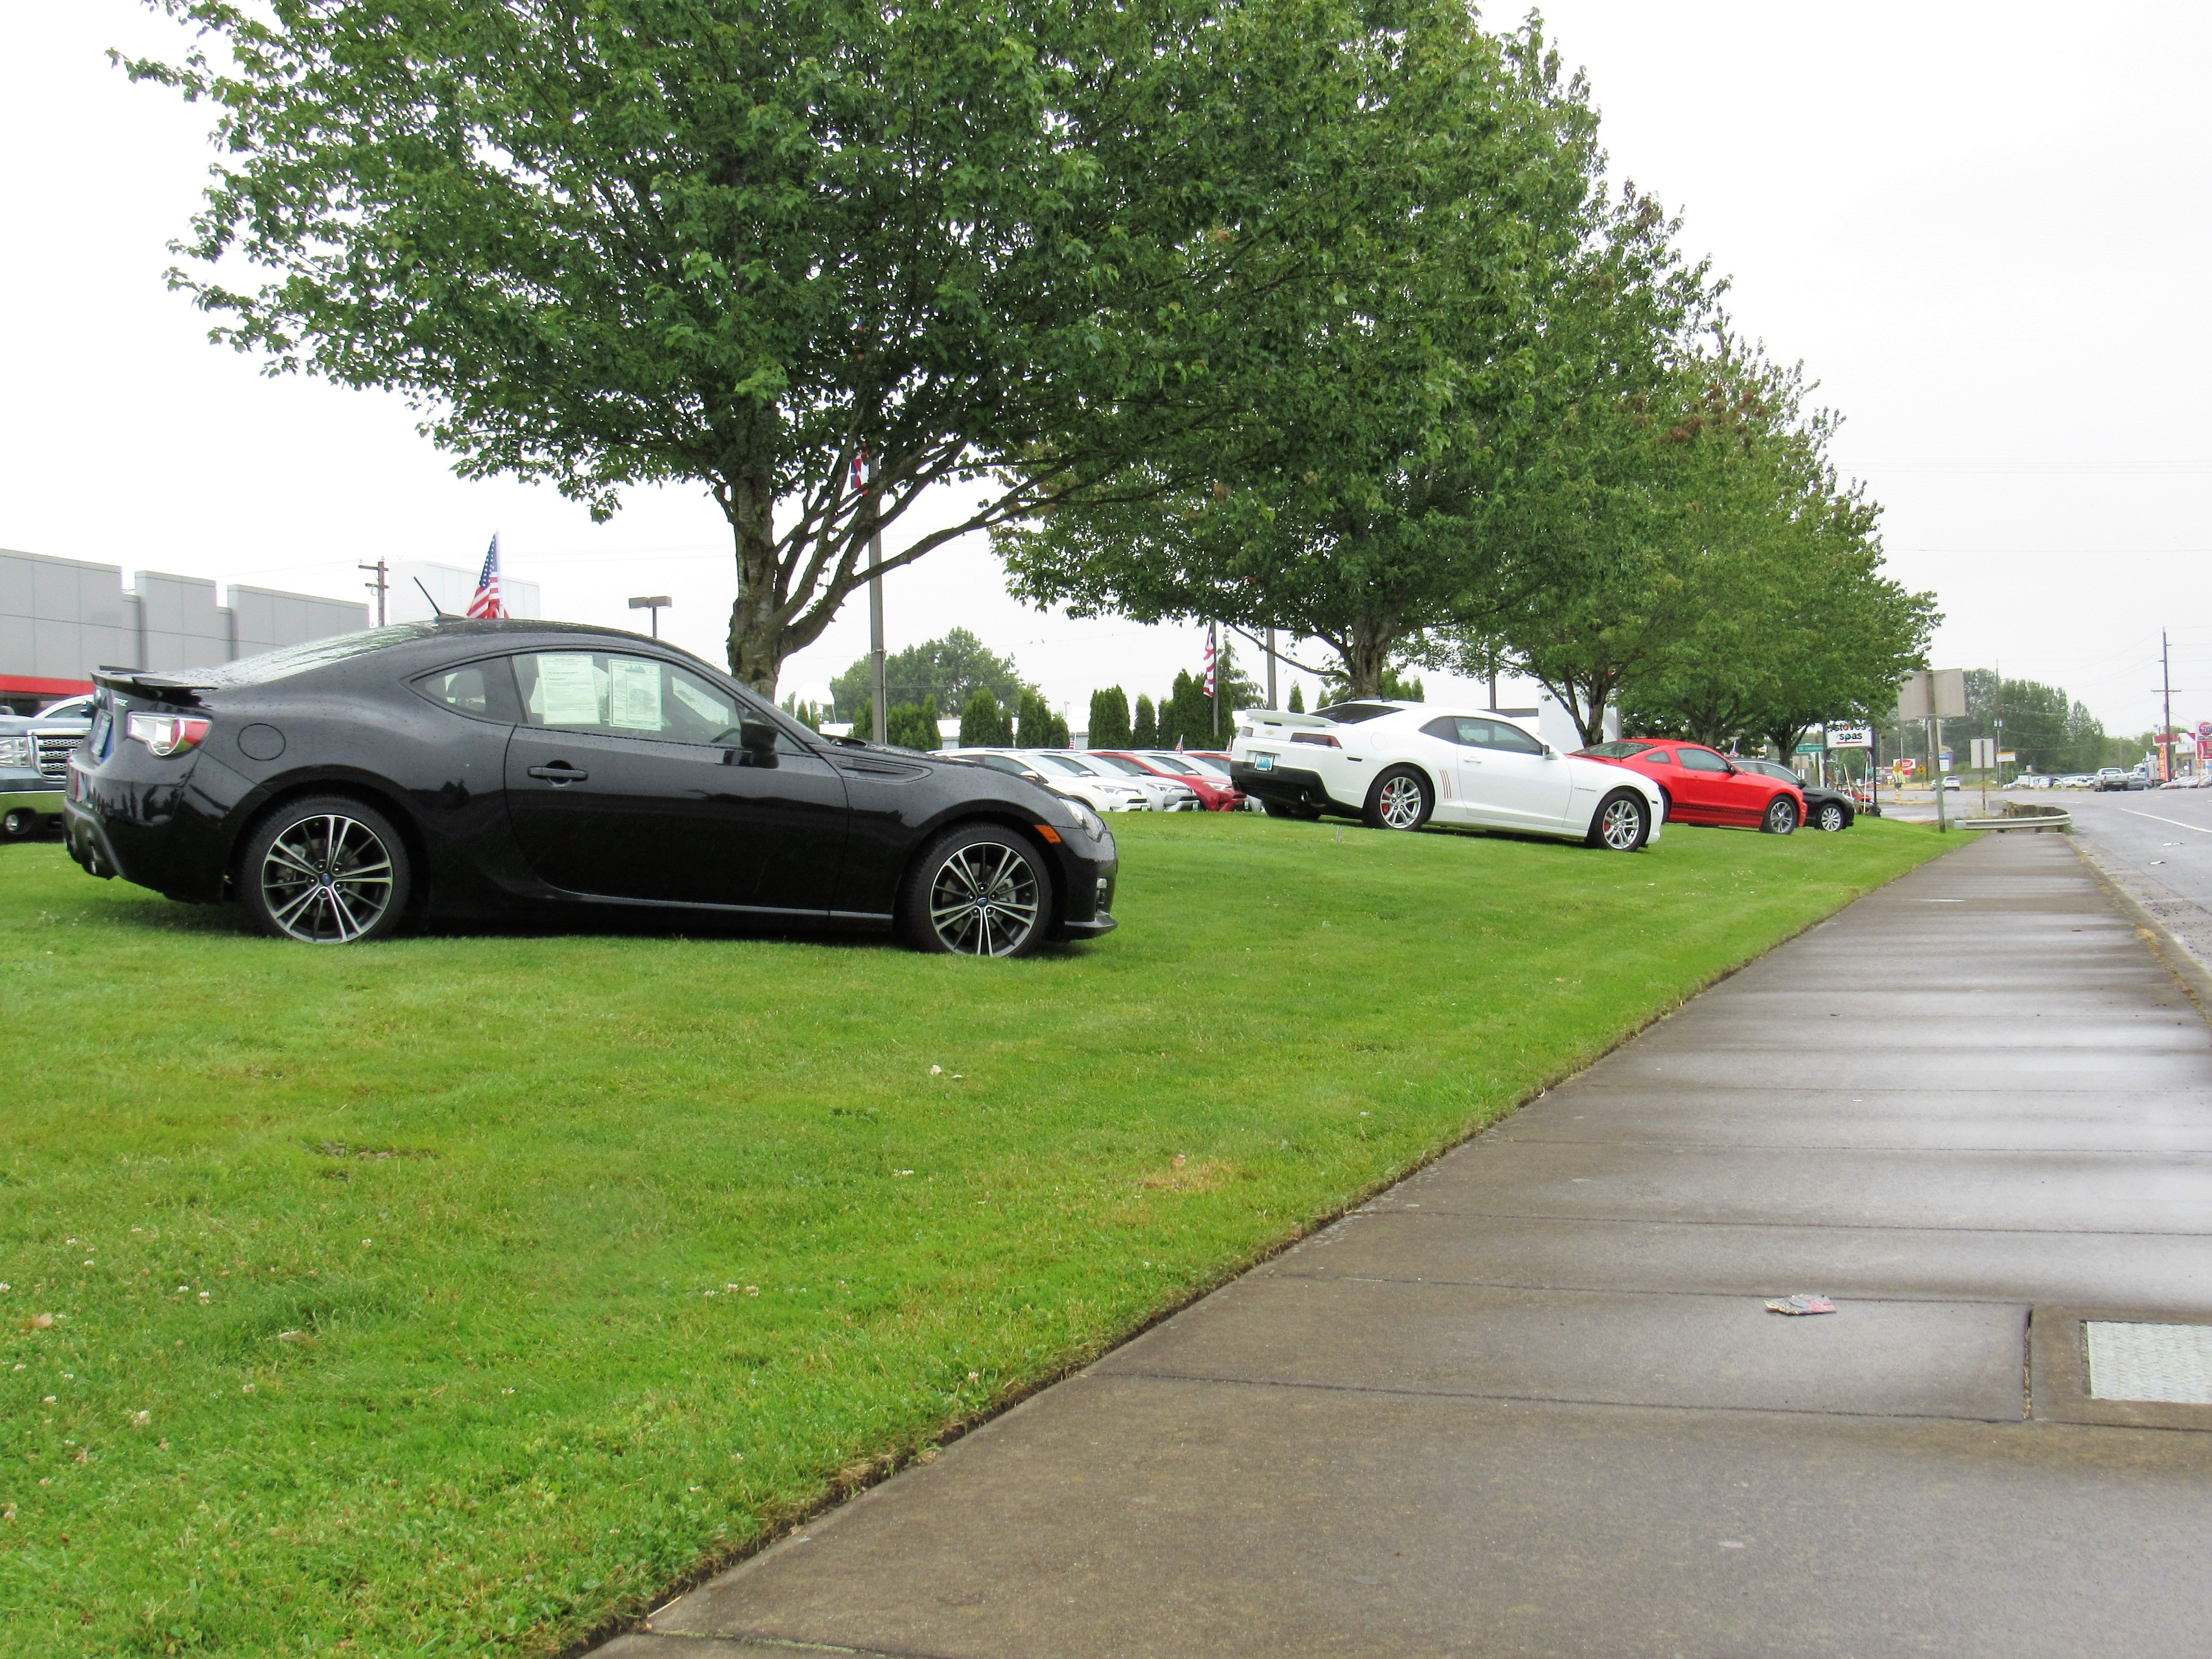 Some of the pre-owned cars on the lawn, drive by and take a look  or call for details #call #preowned #cars #vehicle